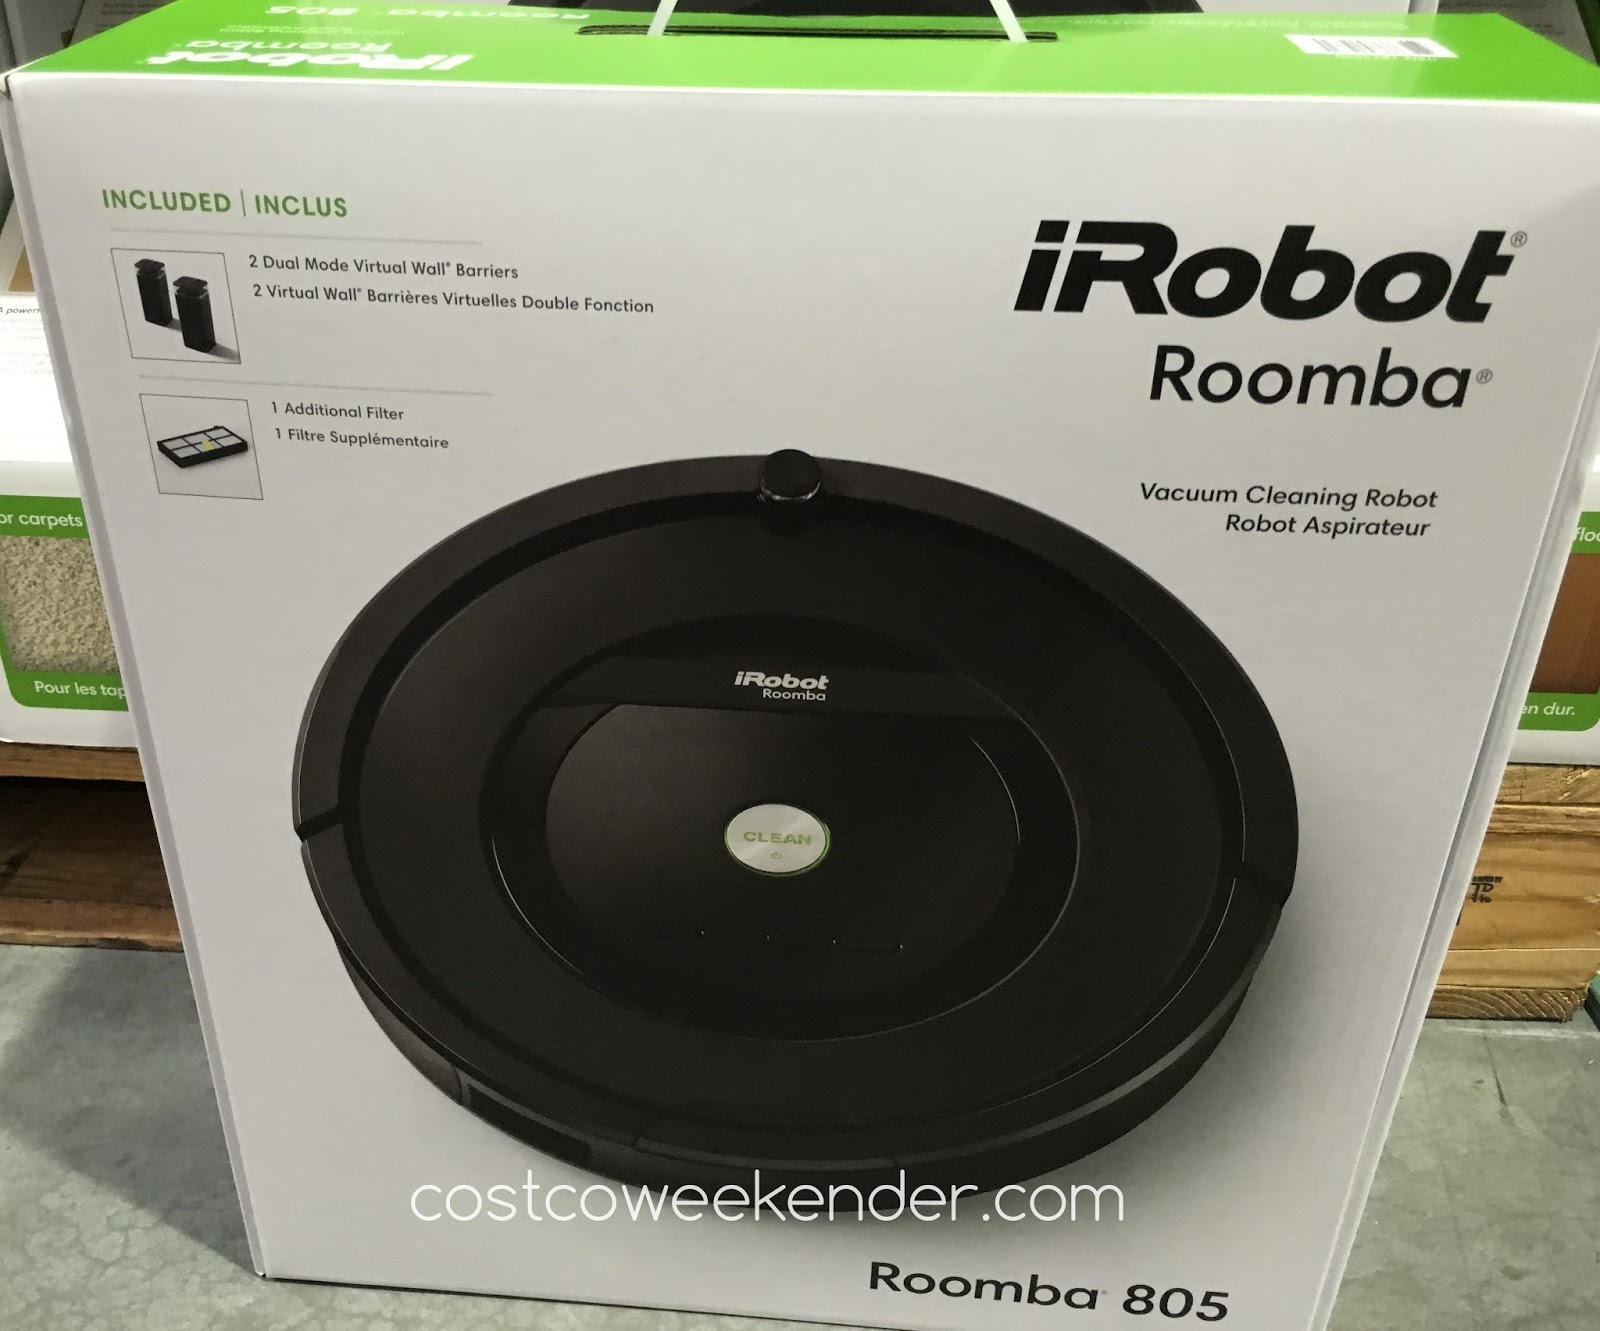 irobot roomba 805 vacuum cleaning robot costco weekender